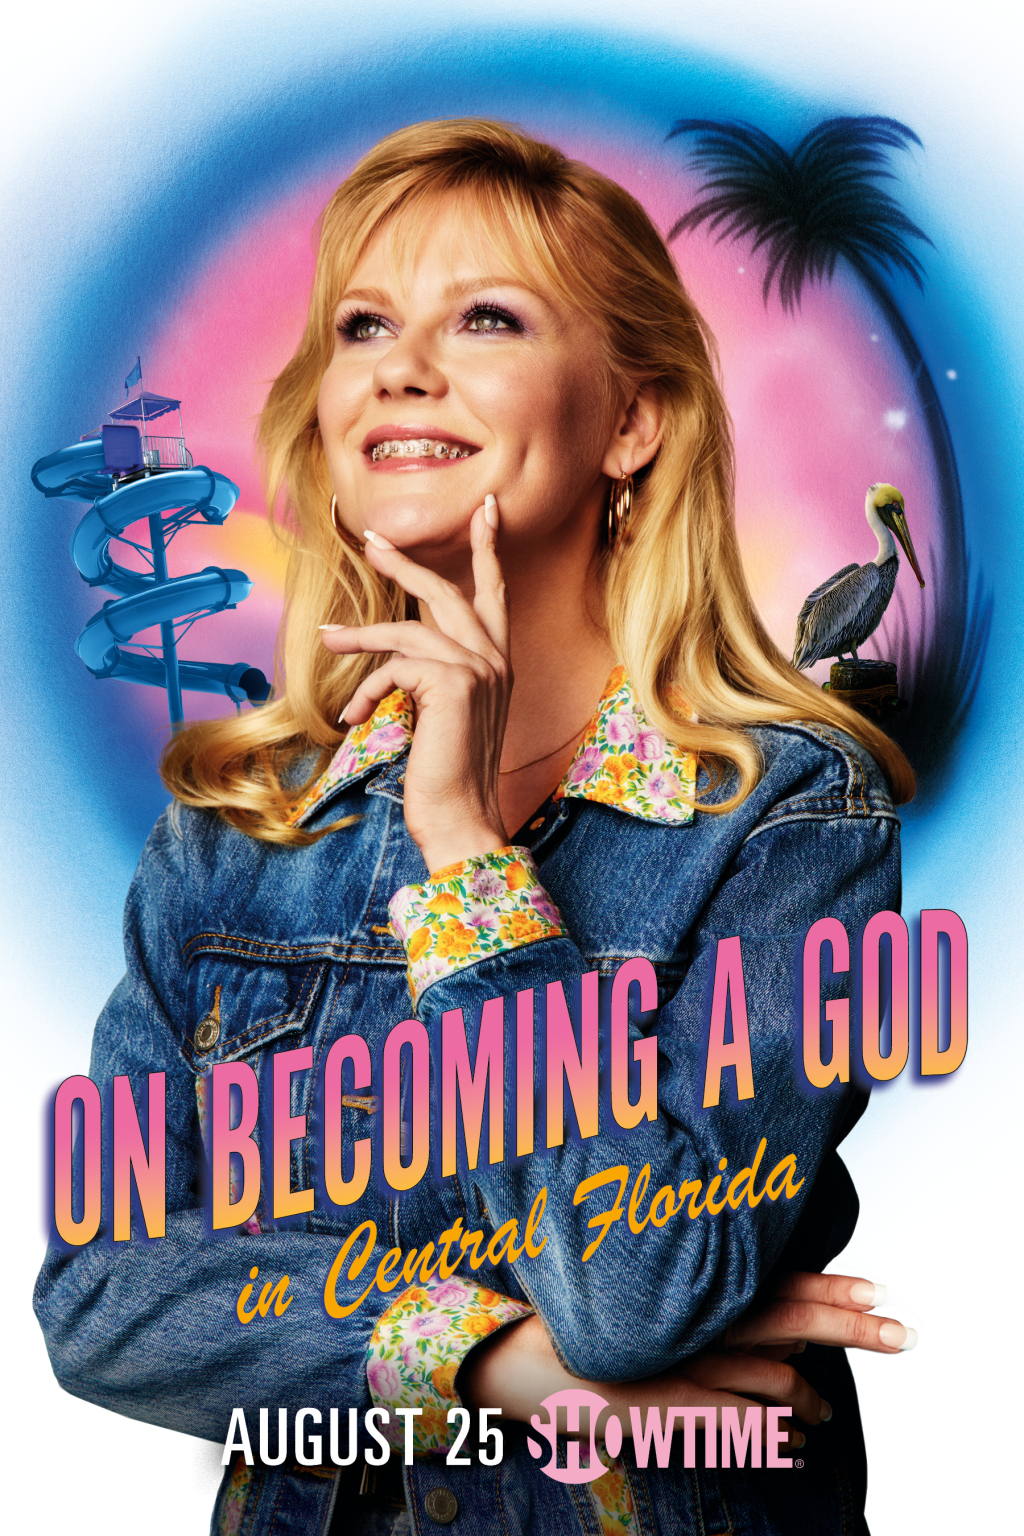 'On Becoming a God in Central Florida